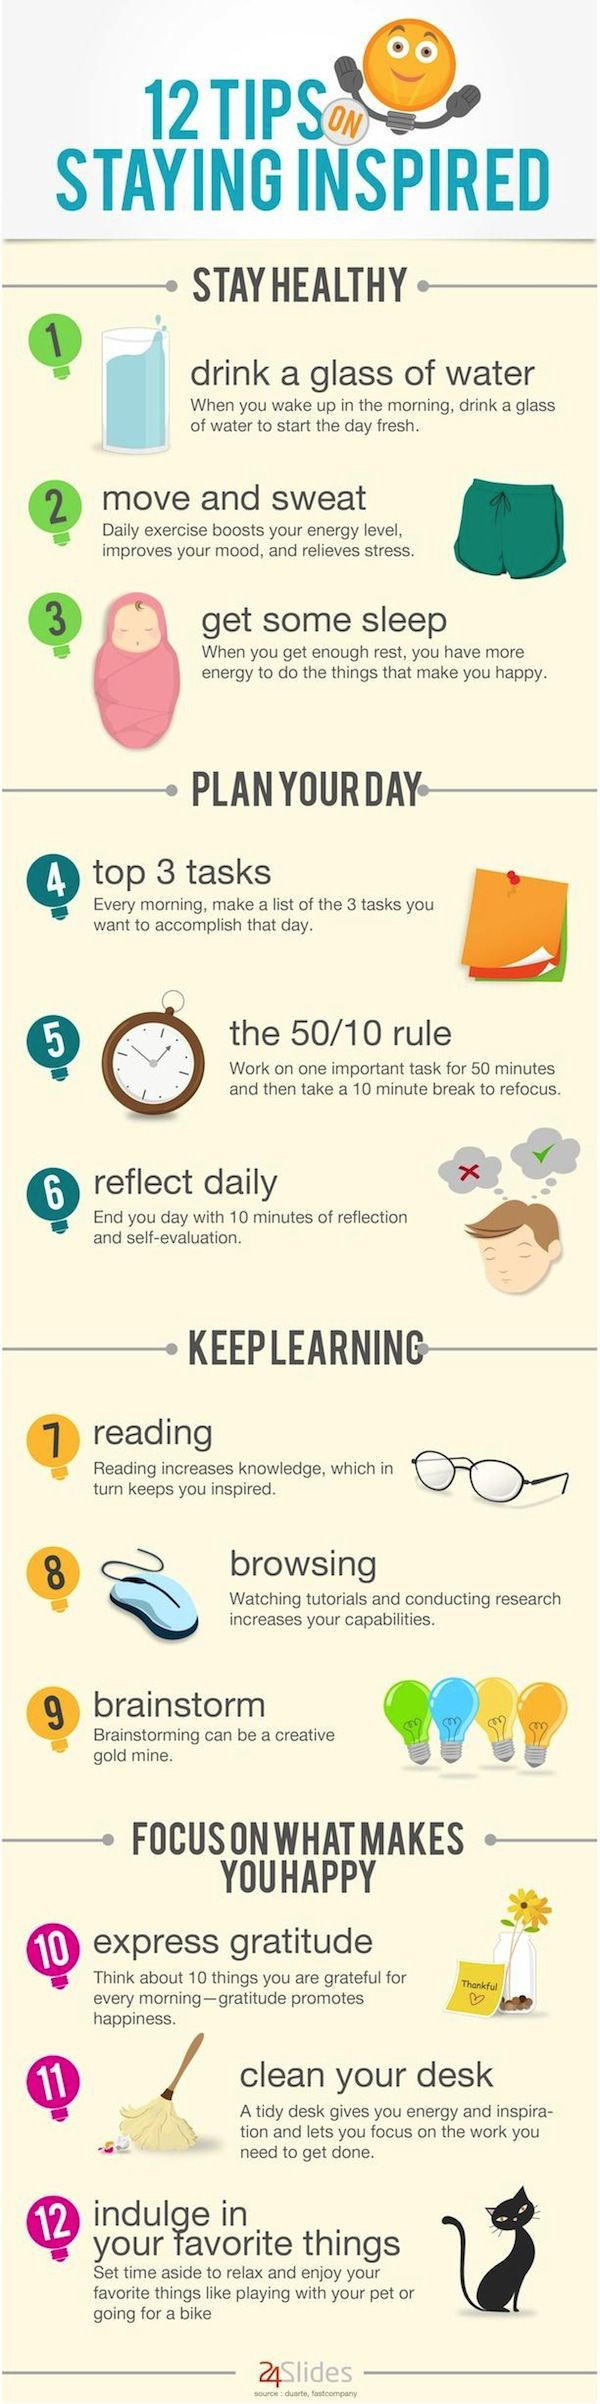 12 Tips to Keep You Inspired Throughout the Day